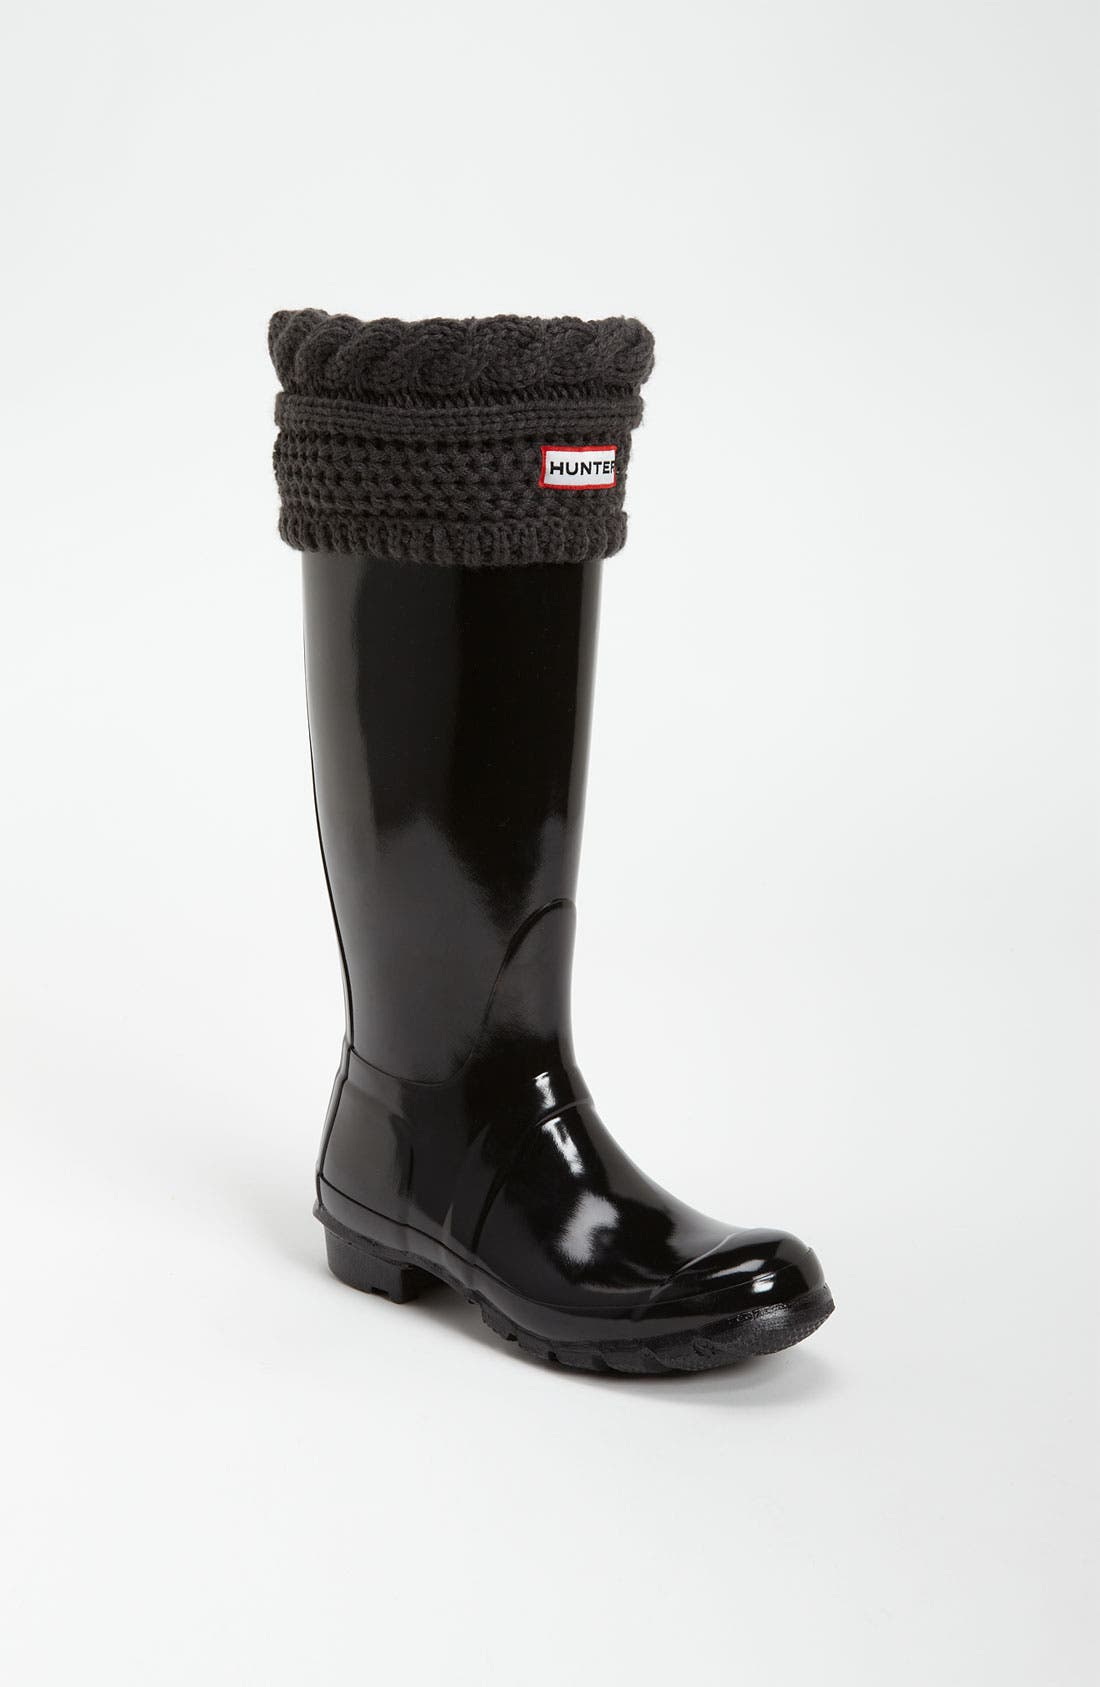 Main Image - Hunter Tall Gloss Rain Boot & Moss Cable Welly Socks